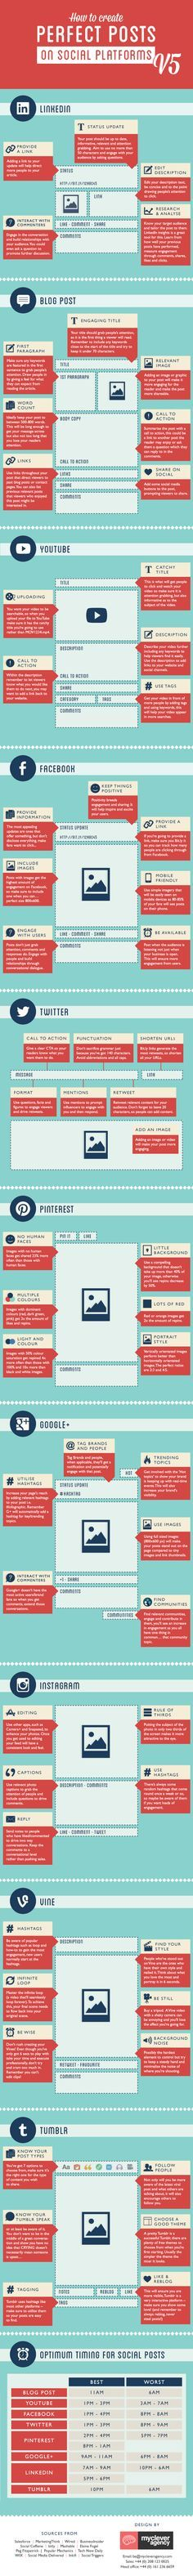 How to create perfect posts on Social platforms V5 #infographic